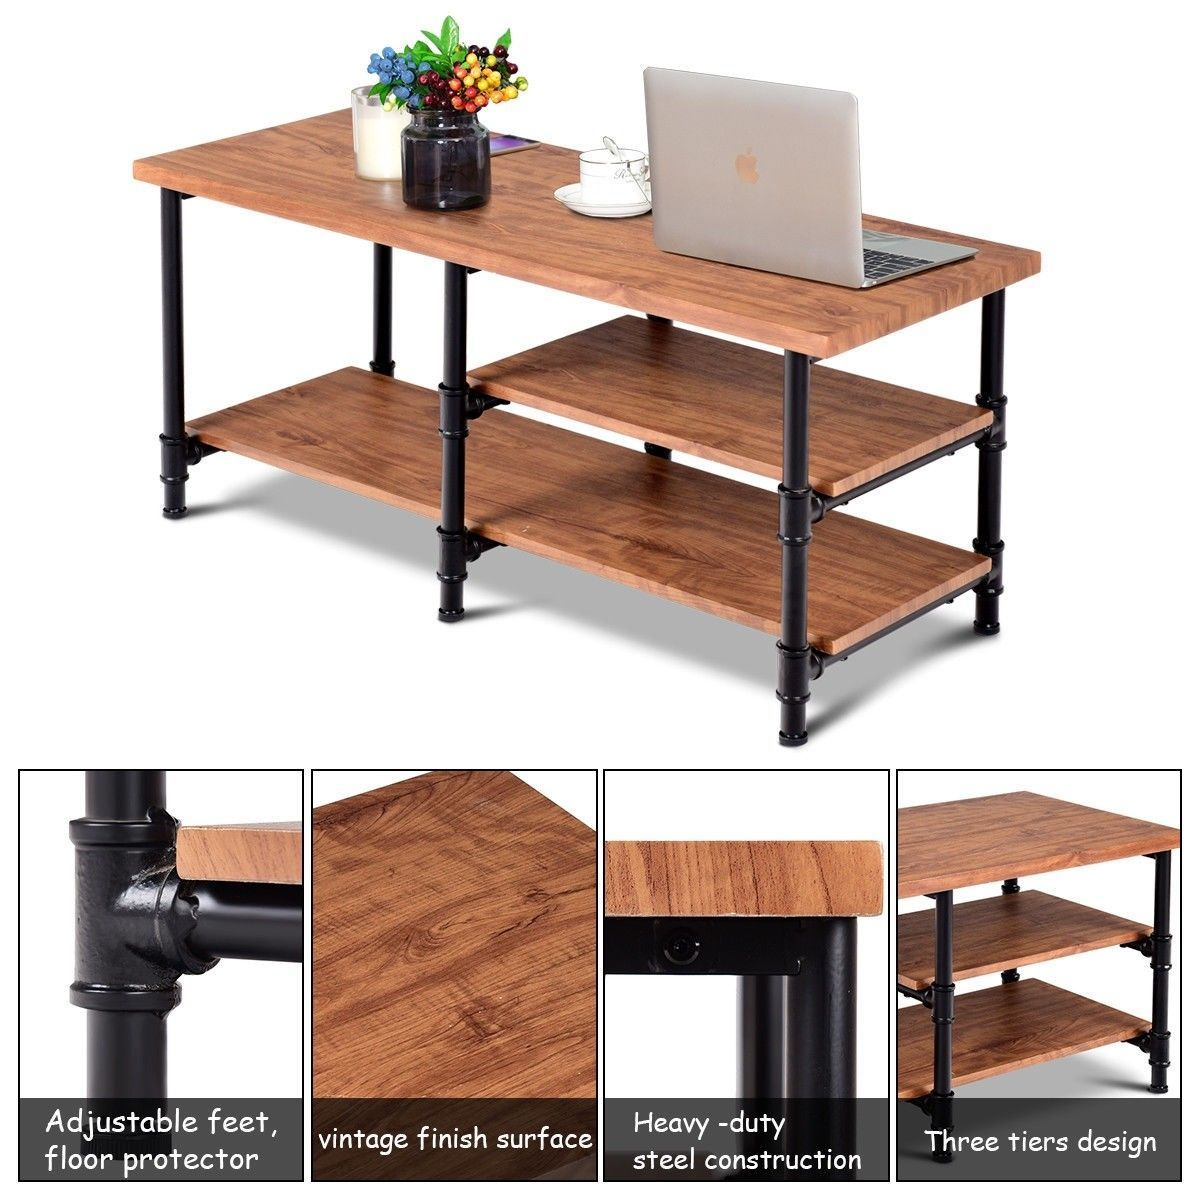 3 Tier Metal Frame Coffee Table With Storage Shelves Coffee Table Wood Coffee Table With Storage Coffee Table Metal Frame